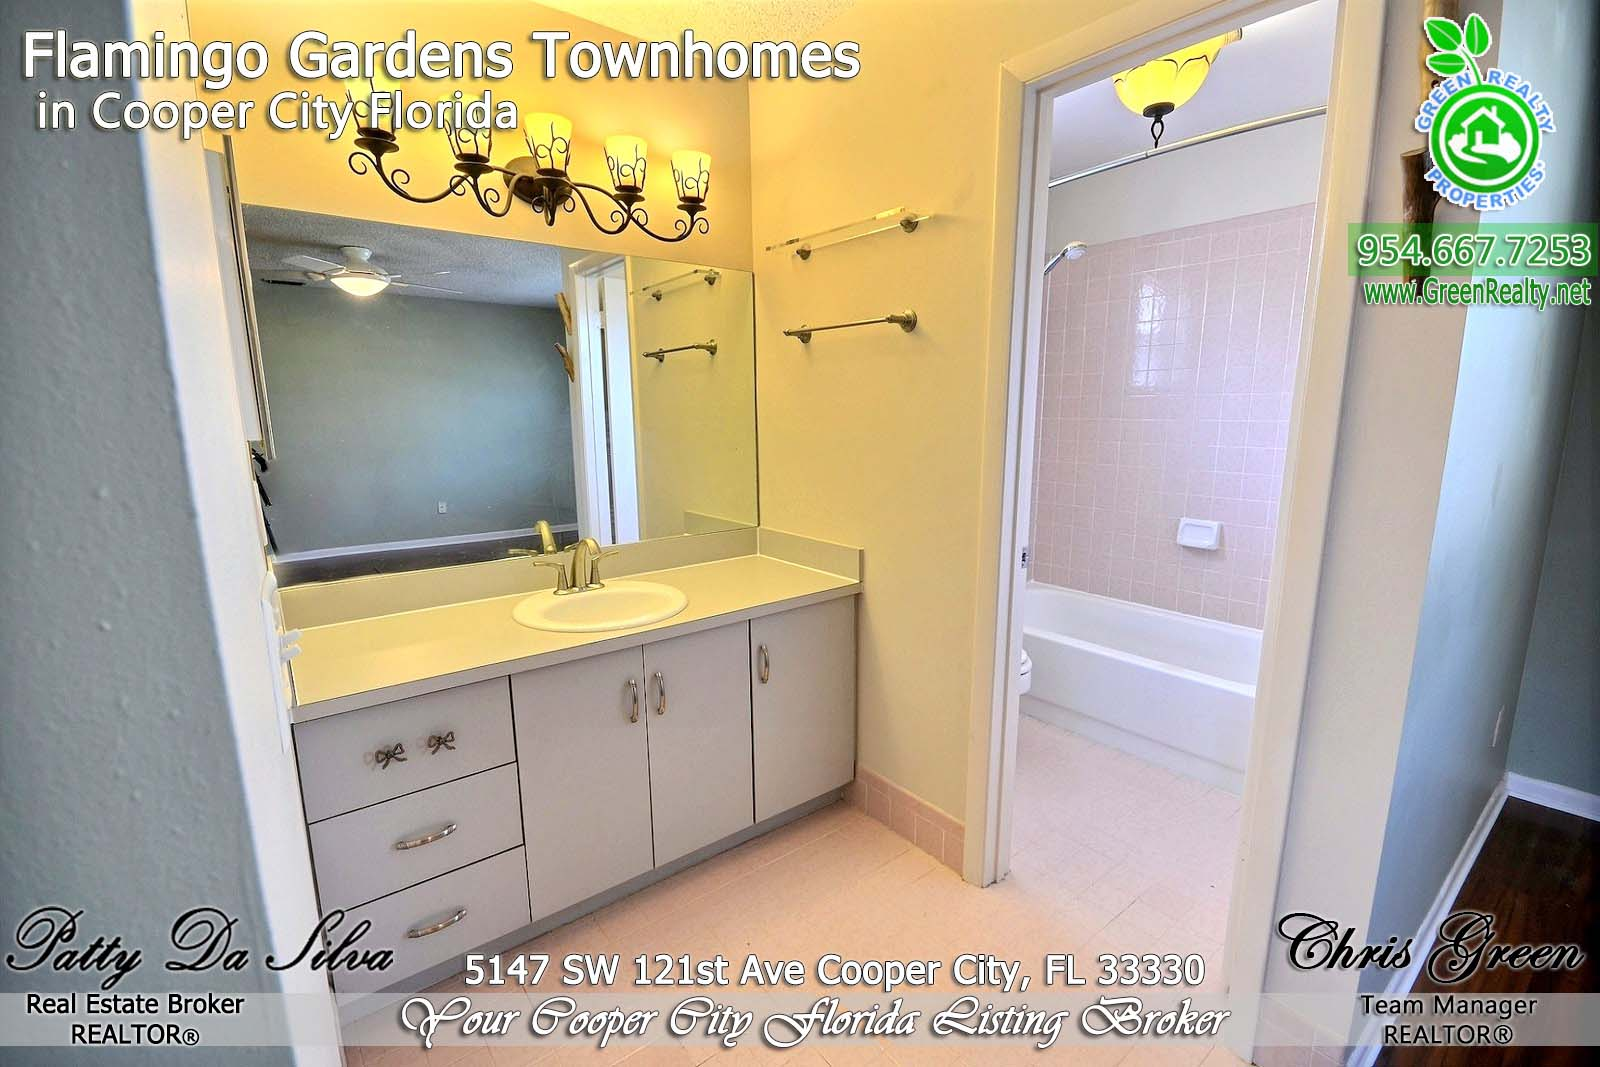 24 Flamingo Gardens Townhomes For Sale (3)